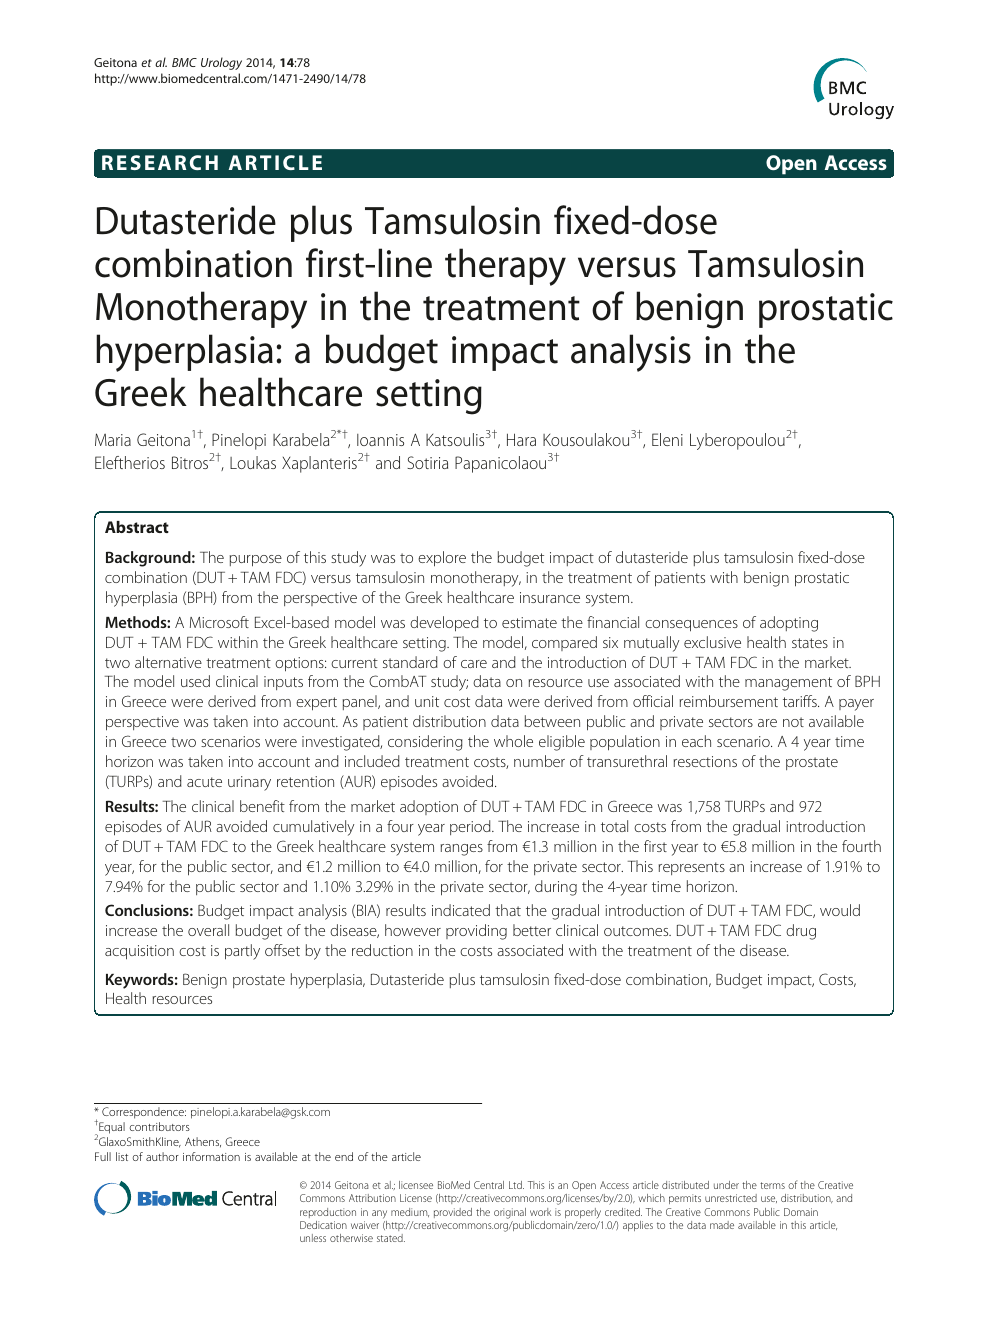 Dutasteride Plus Tamsulosin Fixed Dose Combination First Line Therapy Versus Tamsulosin Monotherapy In The Treatment Of Benign Prostatic Hyperplasia A Budget Impact Analysis In The Greek Healthcare Setting Topic Of Research Paper In